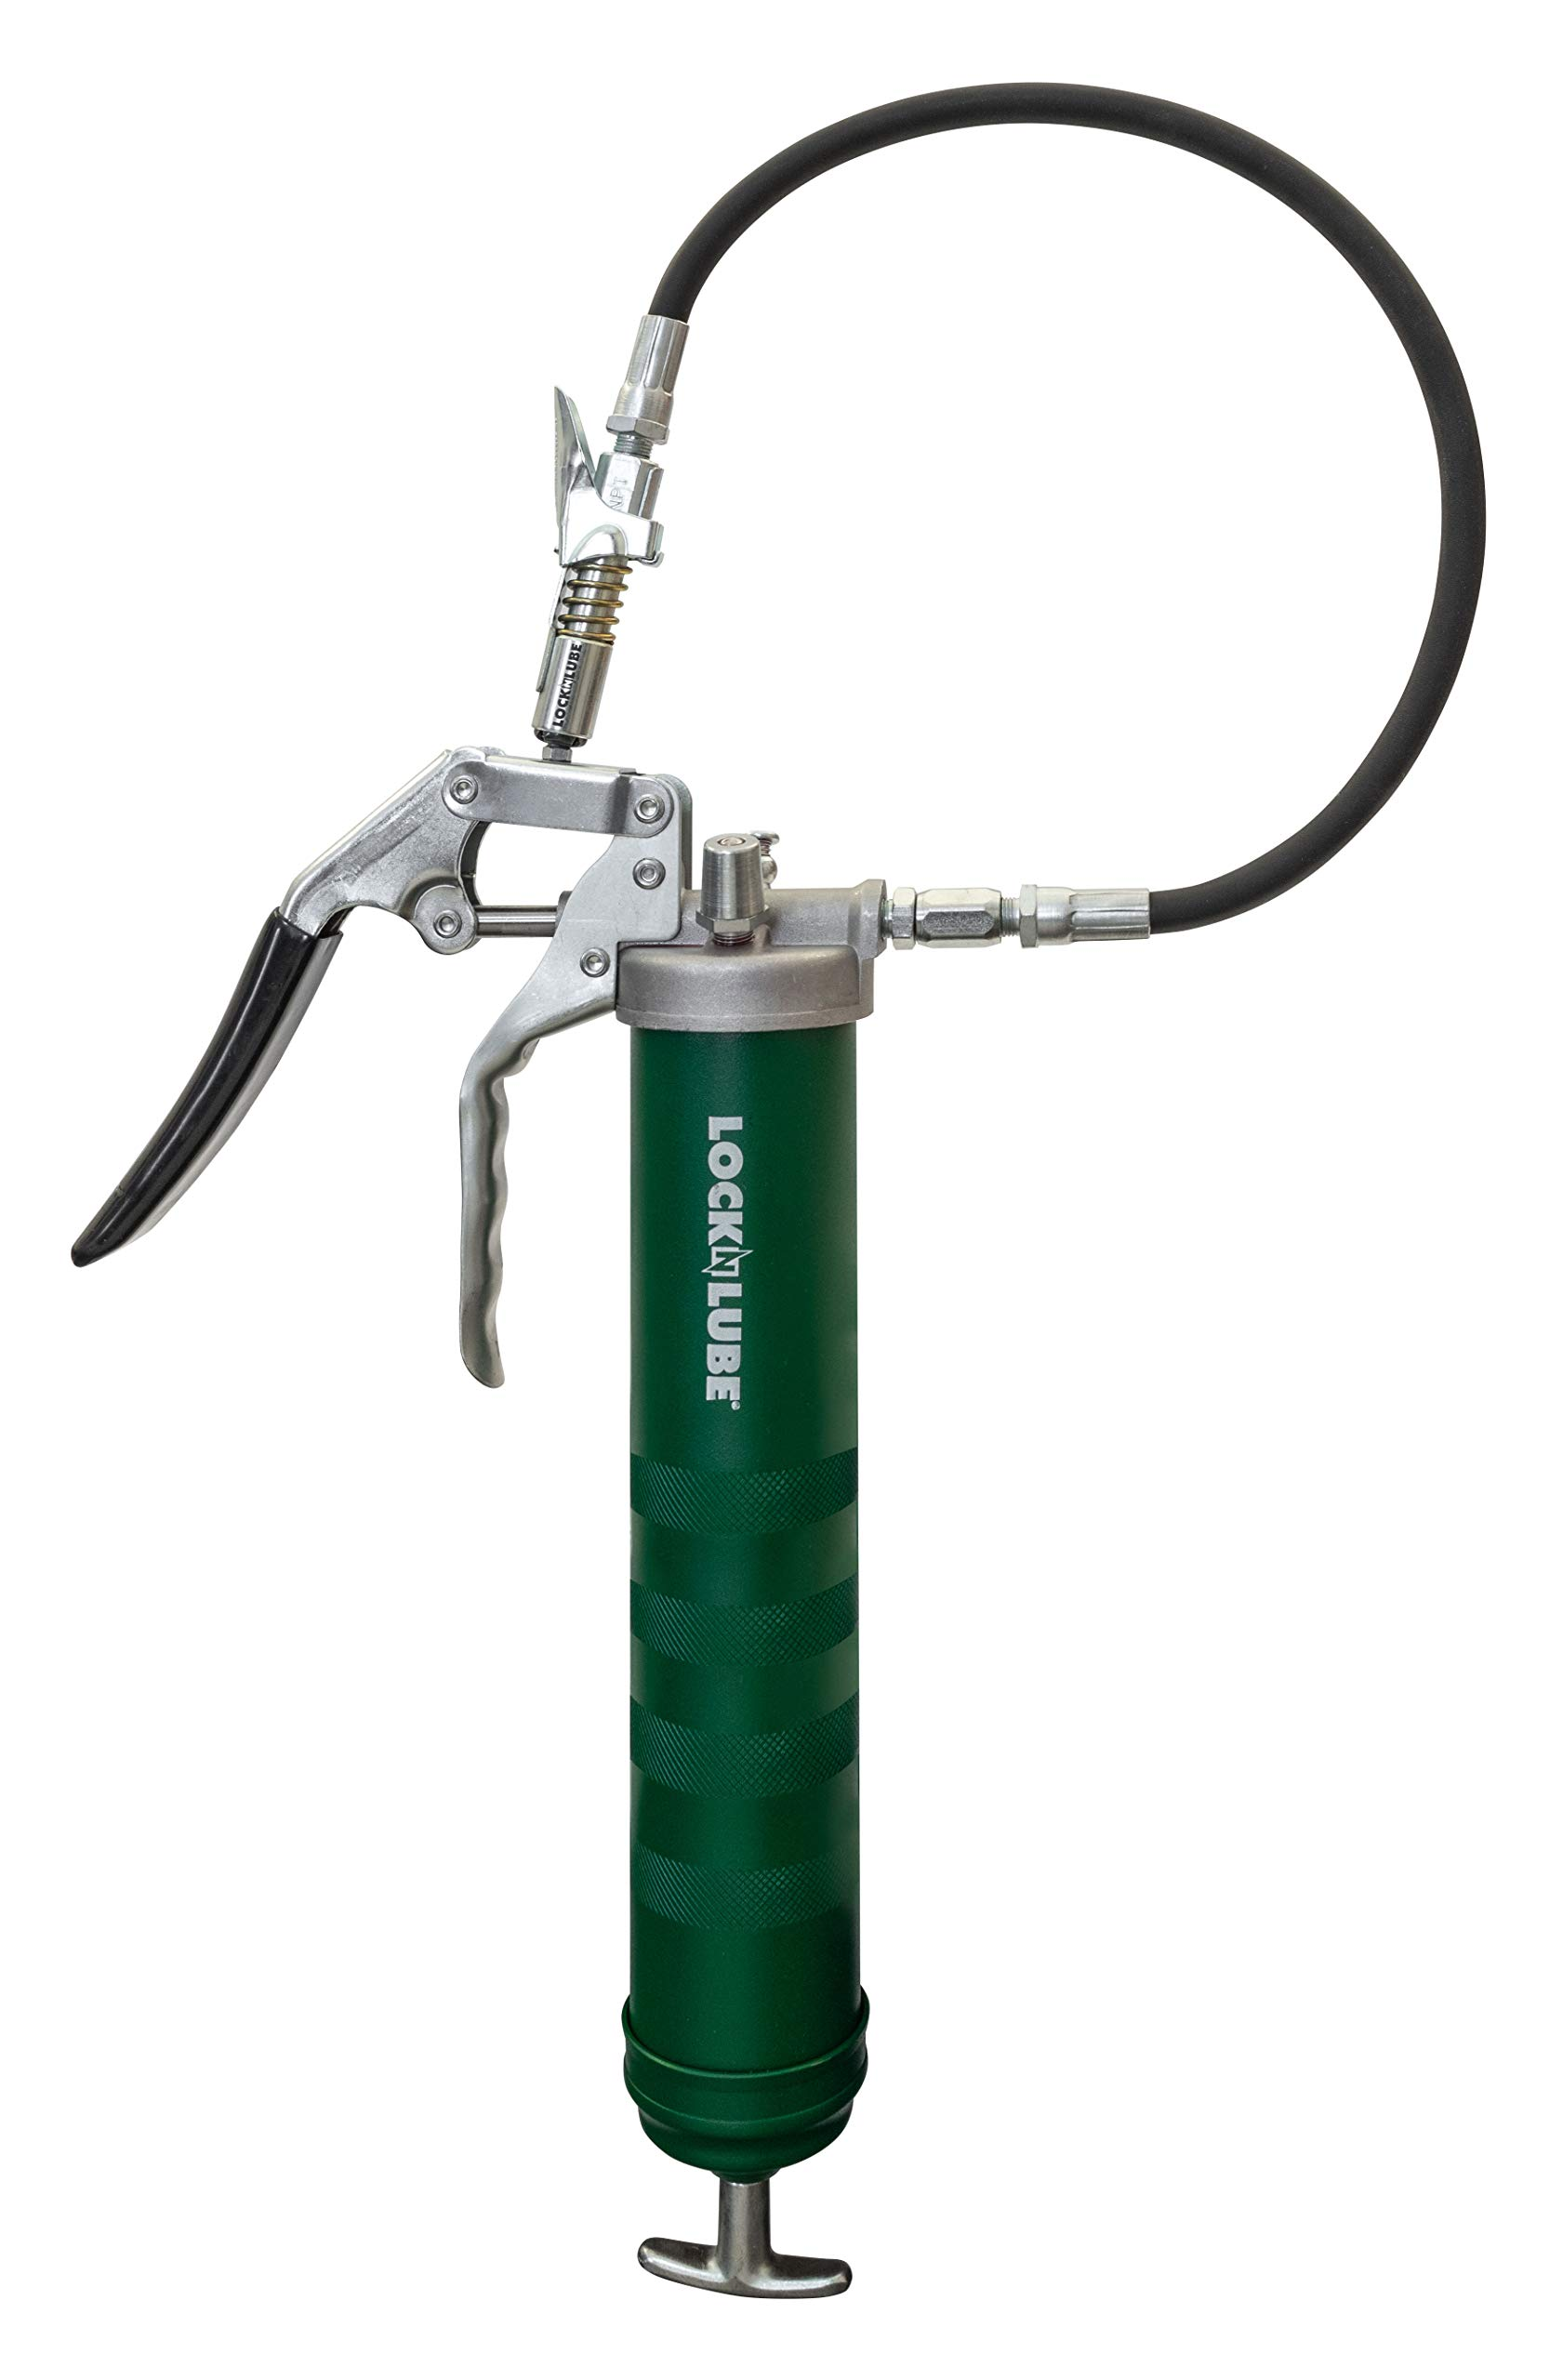 LockNLube Pistol-grip Grease Gun by LockNLube